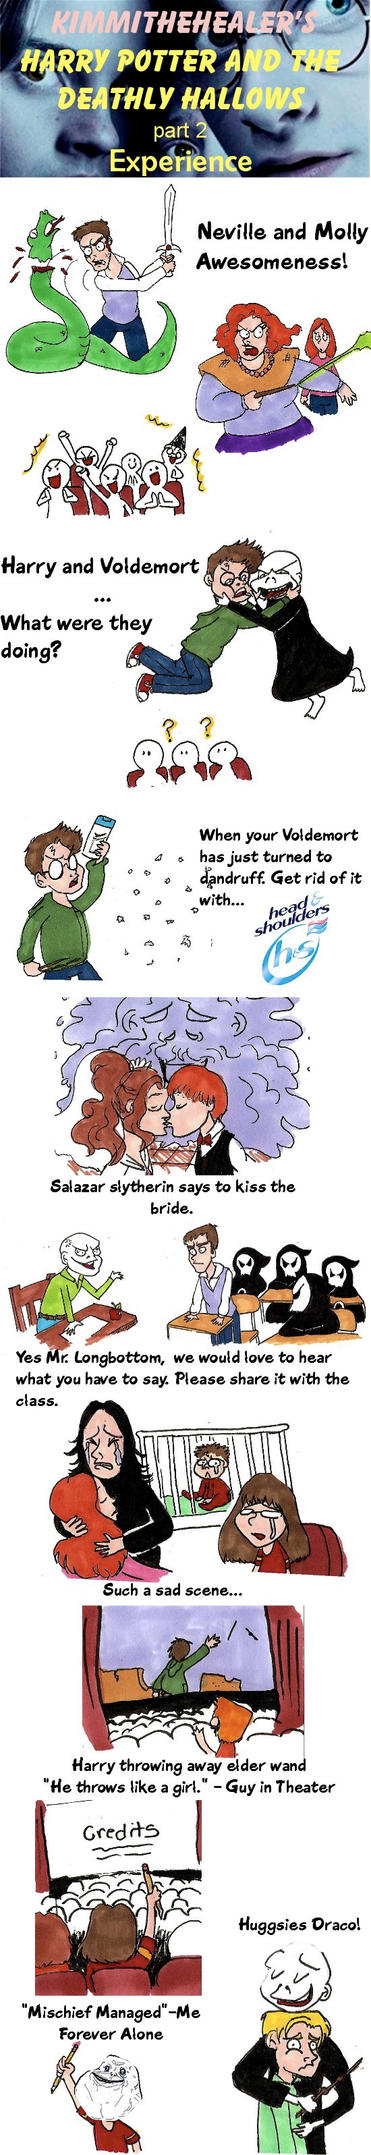 Spoilers Harry Potter Movie by KimmitheHealer